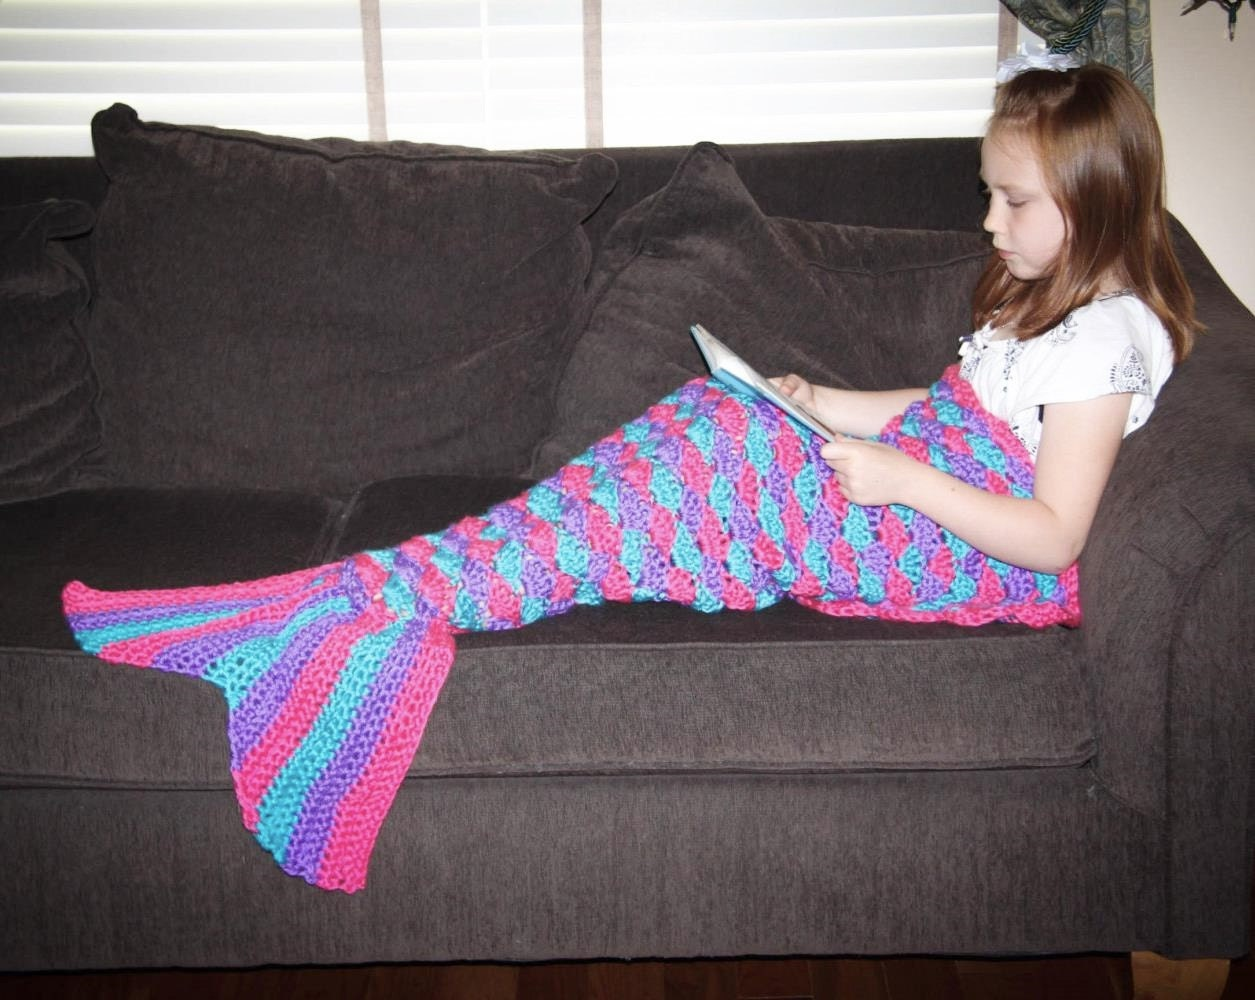 Free Knitting Pattern For Child s Mermaid Blanket : Mermaid Tail Lapghan Blanket Crochet Pattern in ALL SIZES